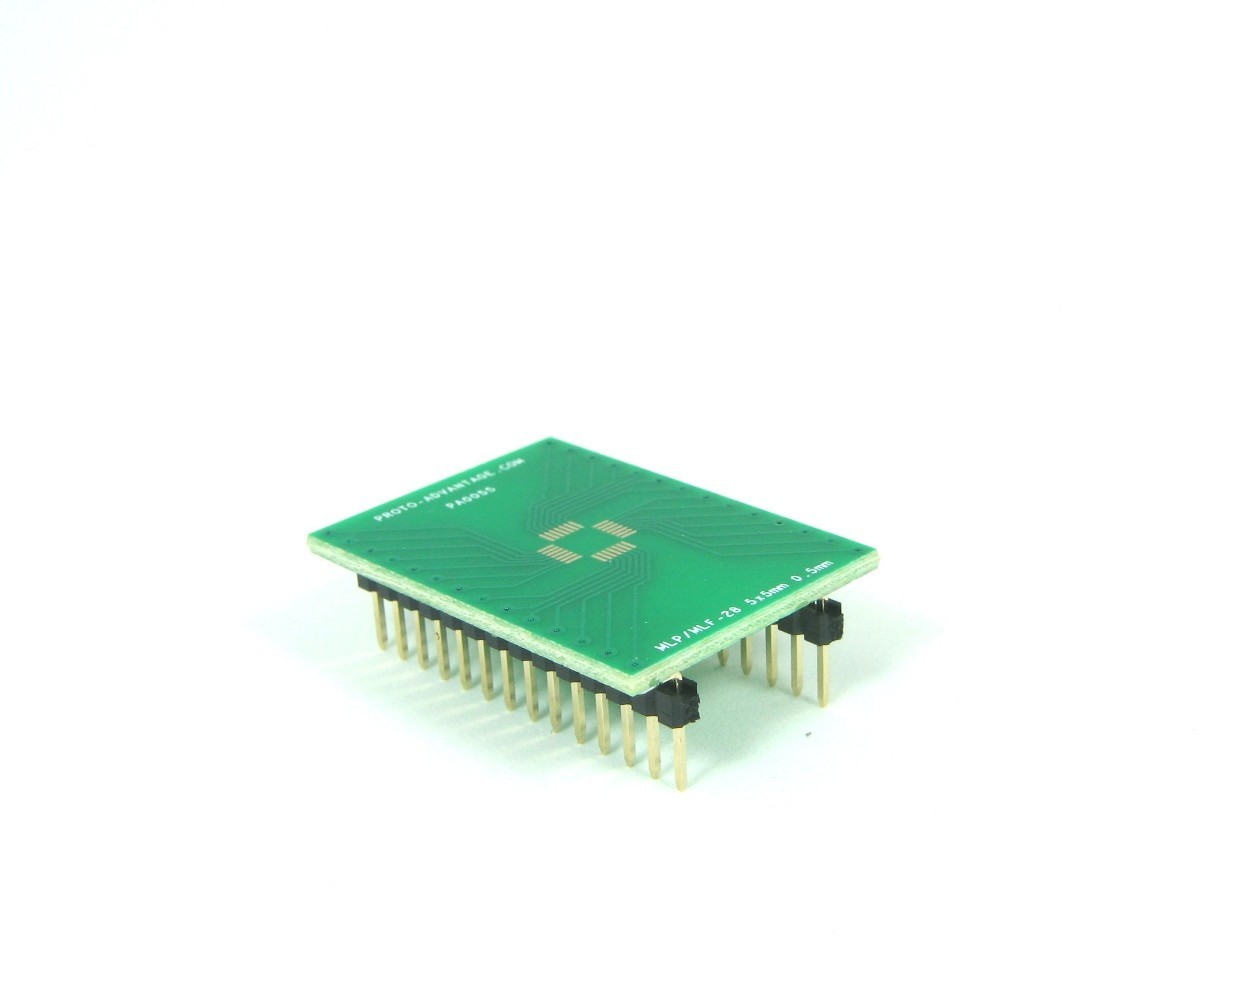 MLP/MLF-28 to DIP-28 SMT Adapter (0.5 mm pitch, 5 x 5 mm body)